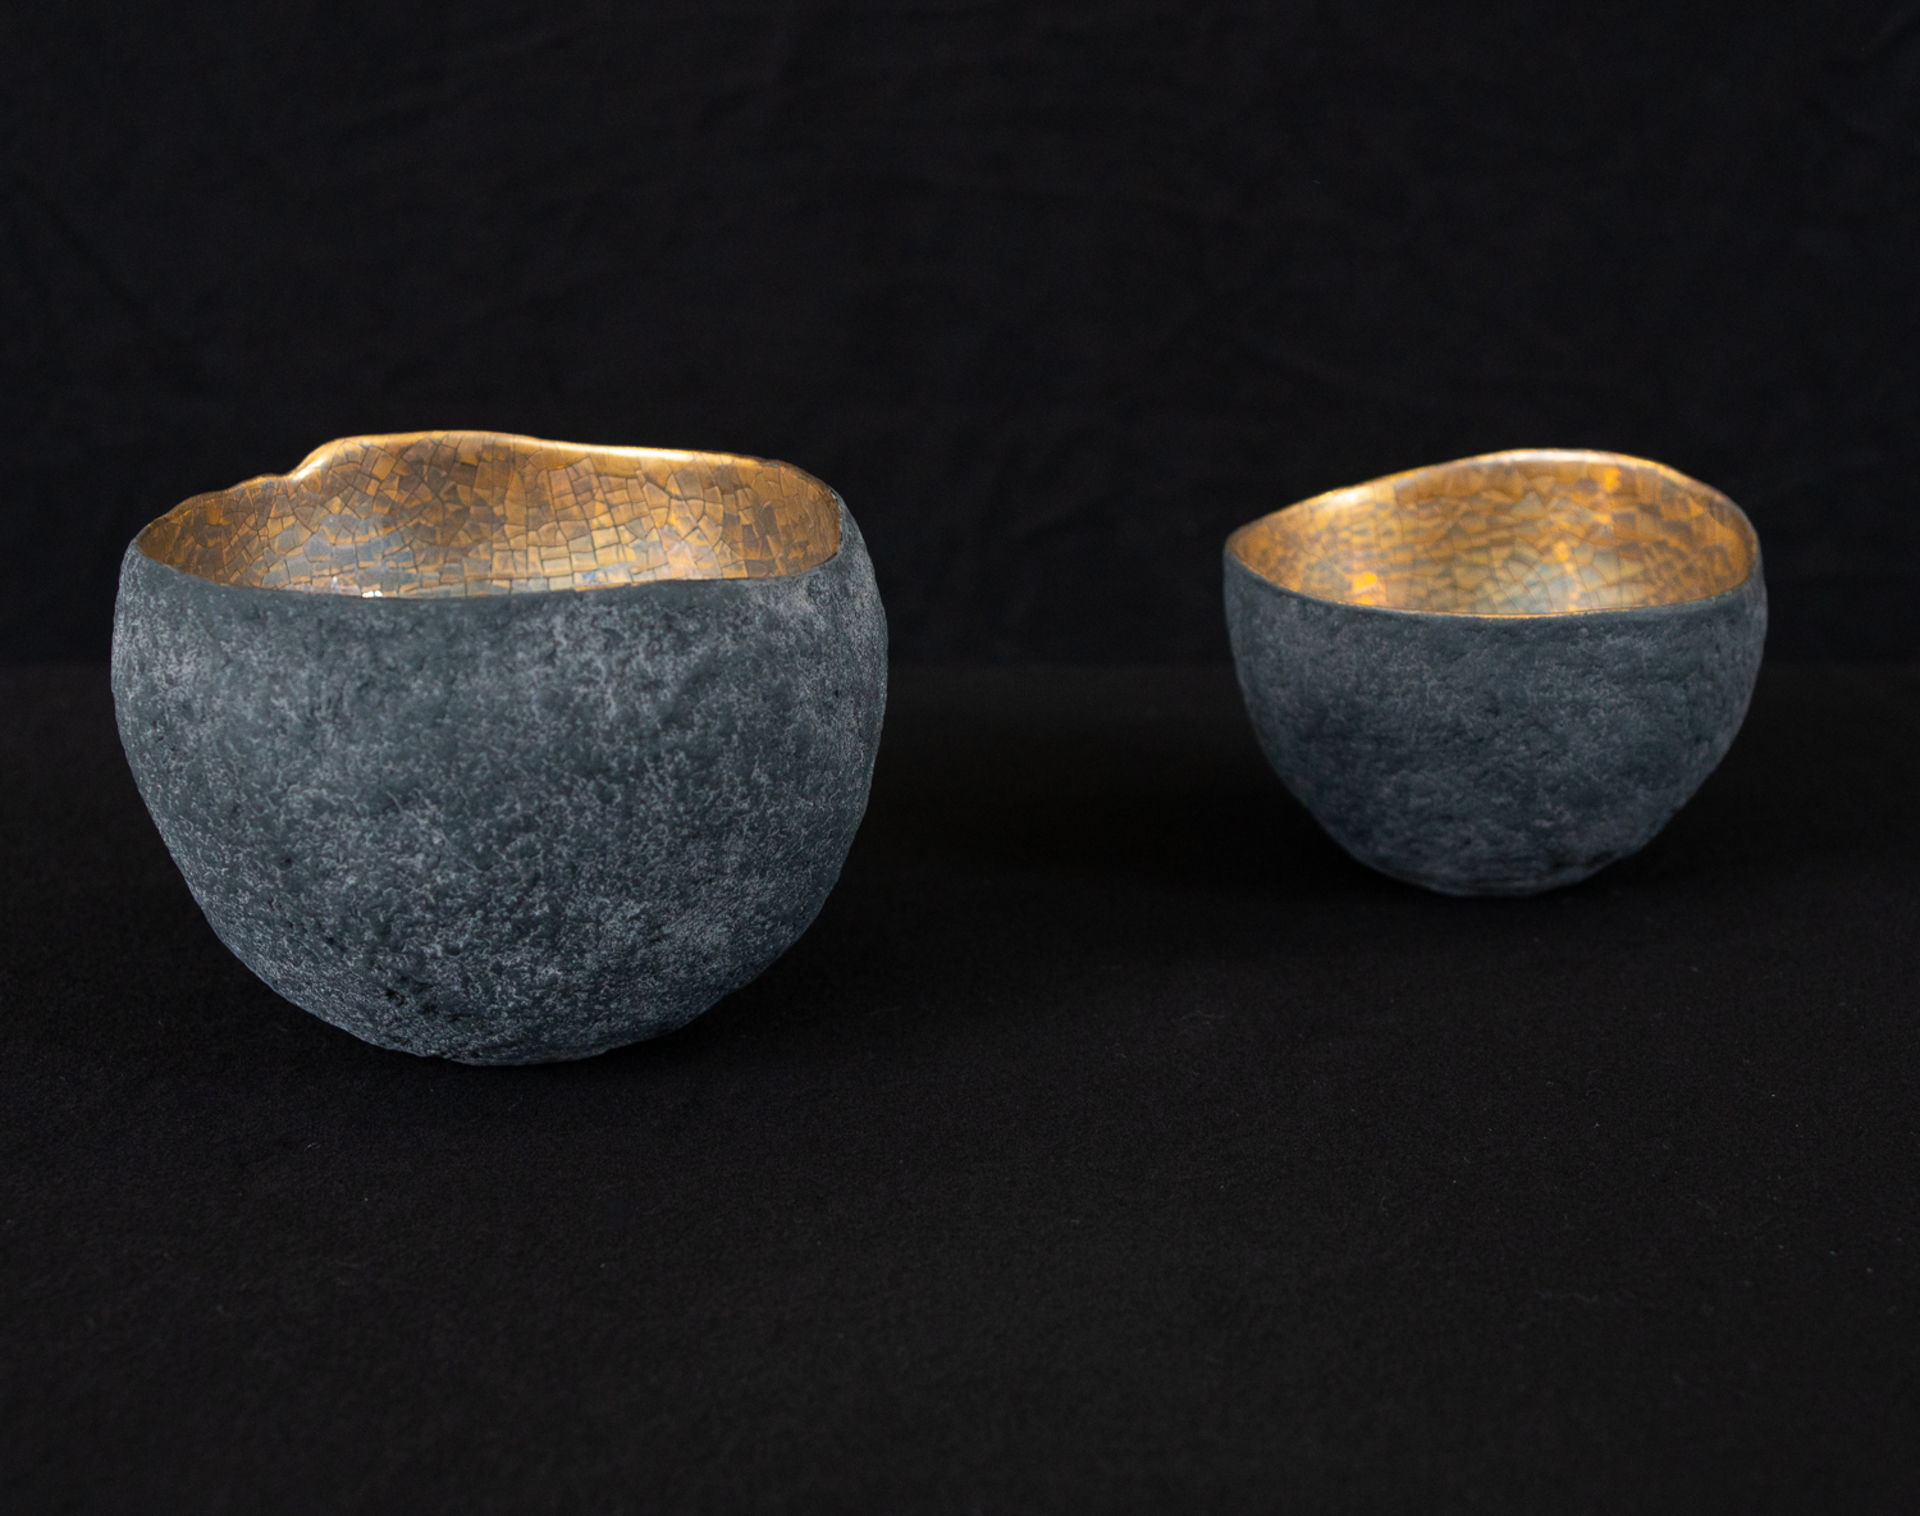 Bowls with platinum and gold by Cristina Salusti